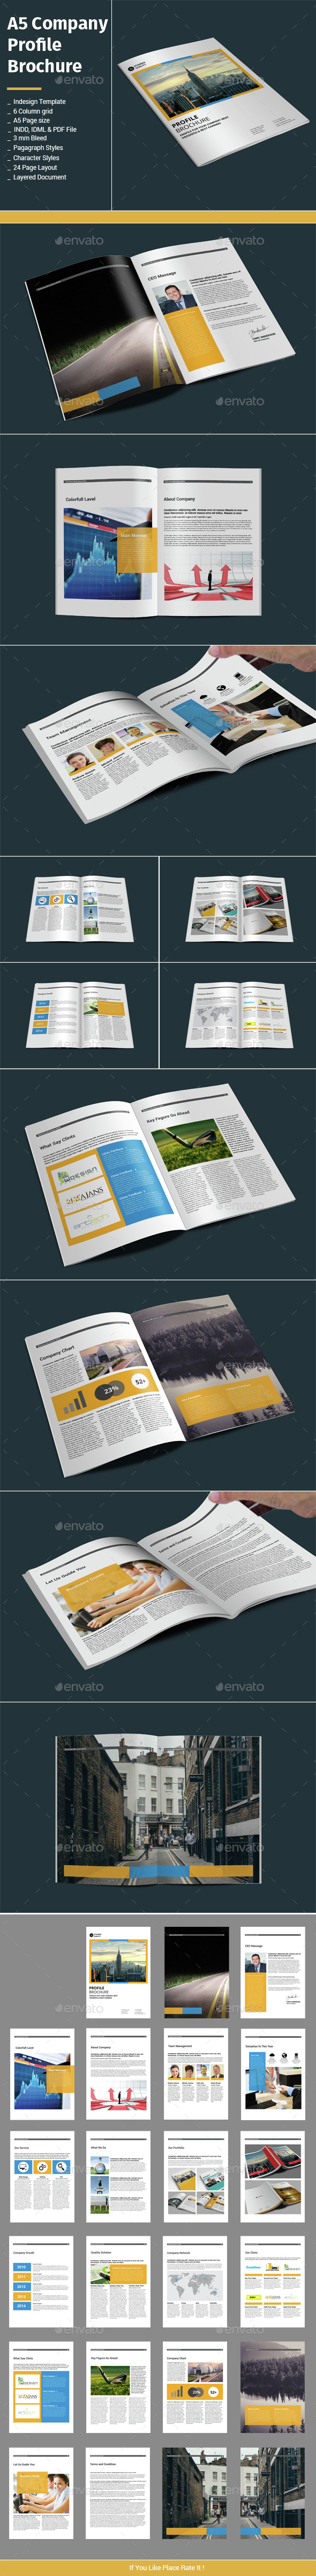 A5 Company Profile Brochure - Corporate Brochures